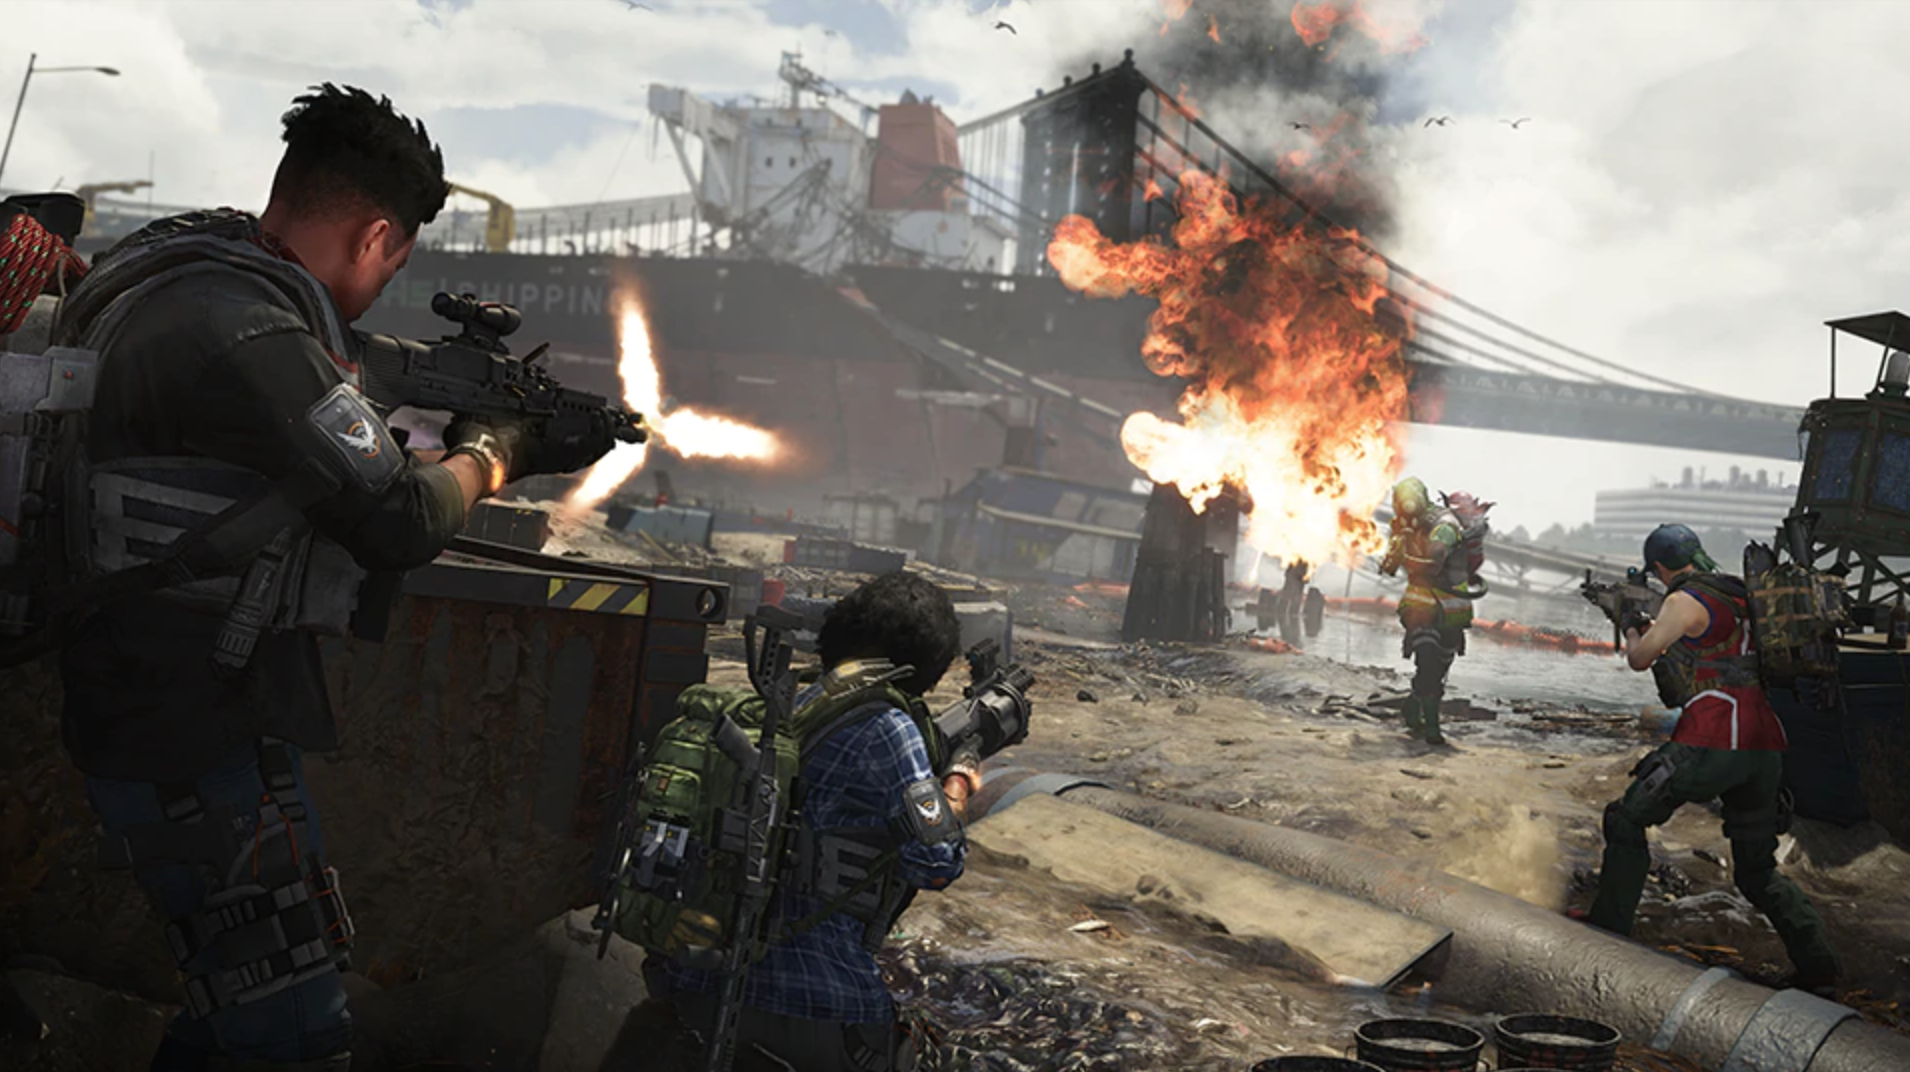 'The Division 2' hits Stadia with PC cross-play on March 17th《全境封锁2》将于3月17日在Stadia上线